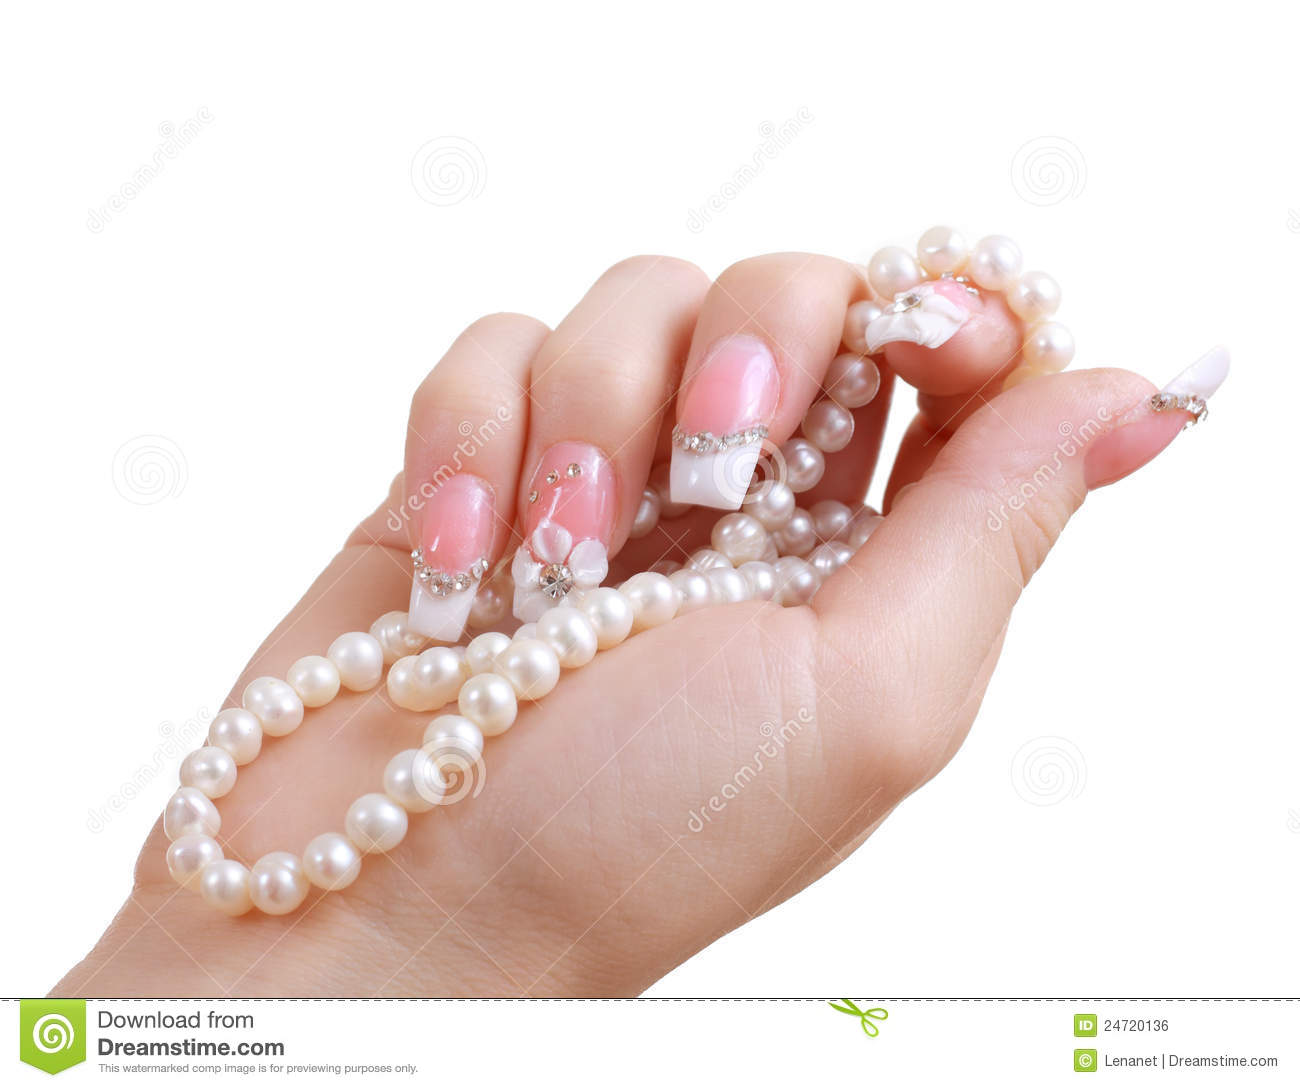 How to Clean a Pearl Necklace